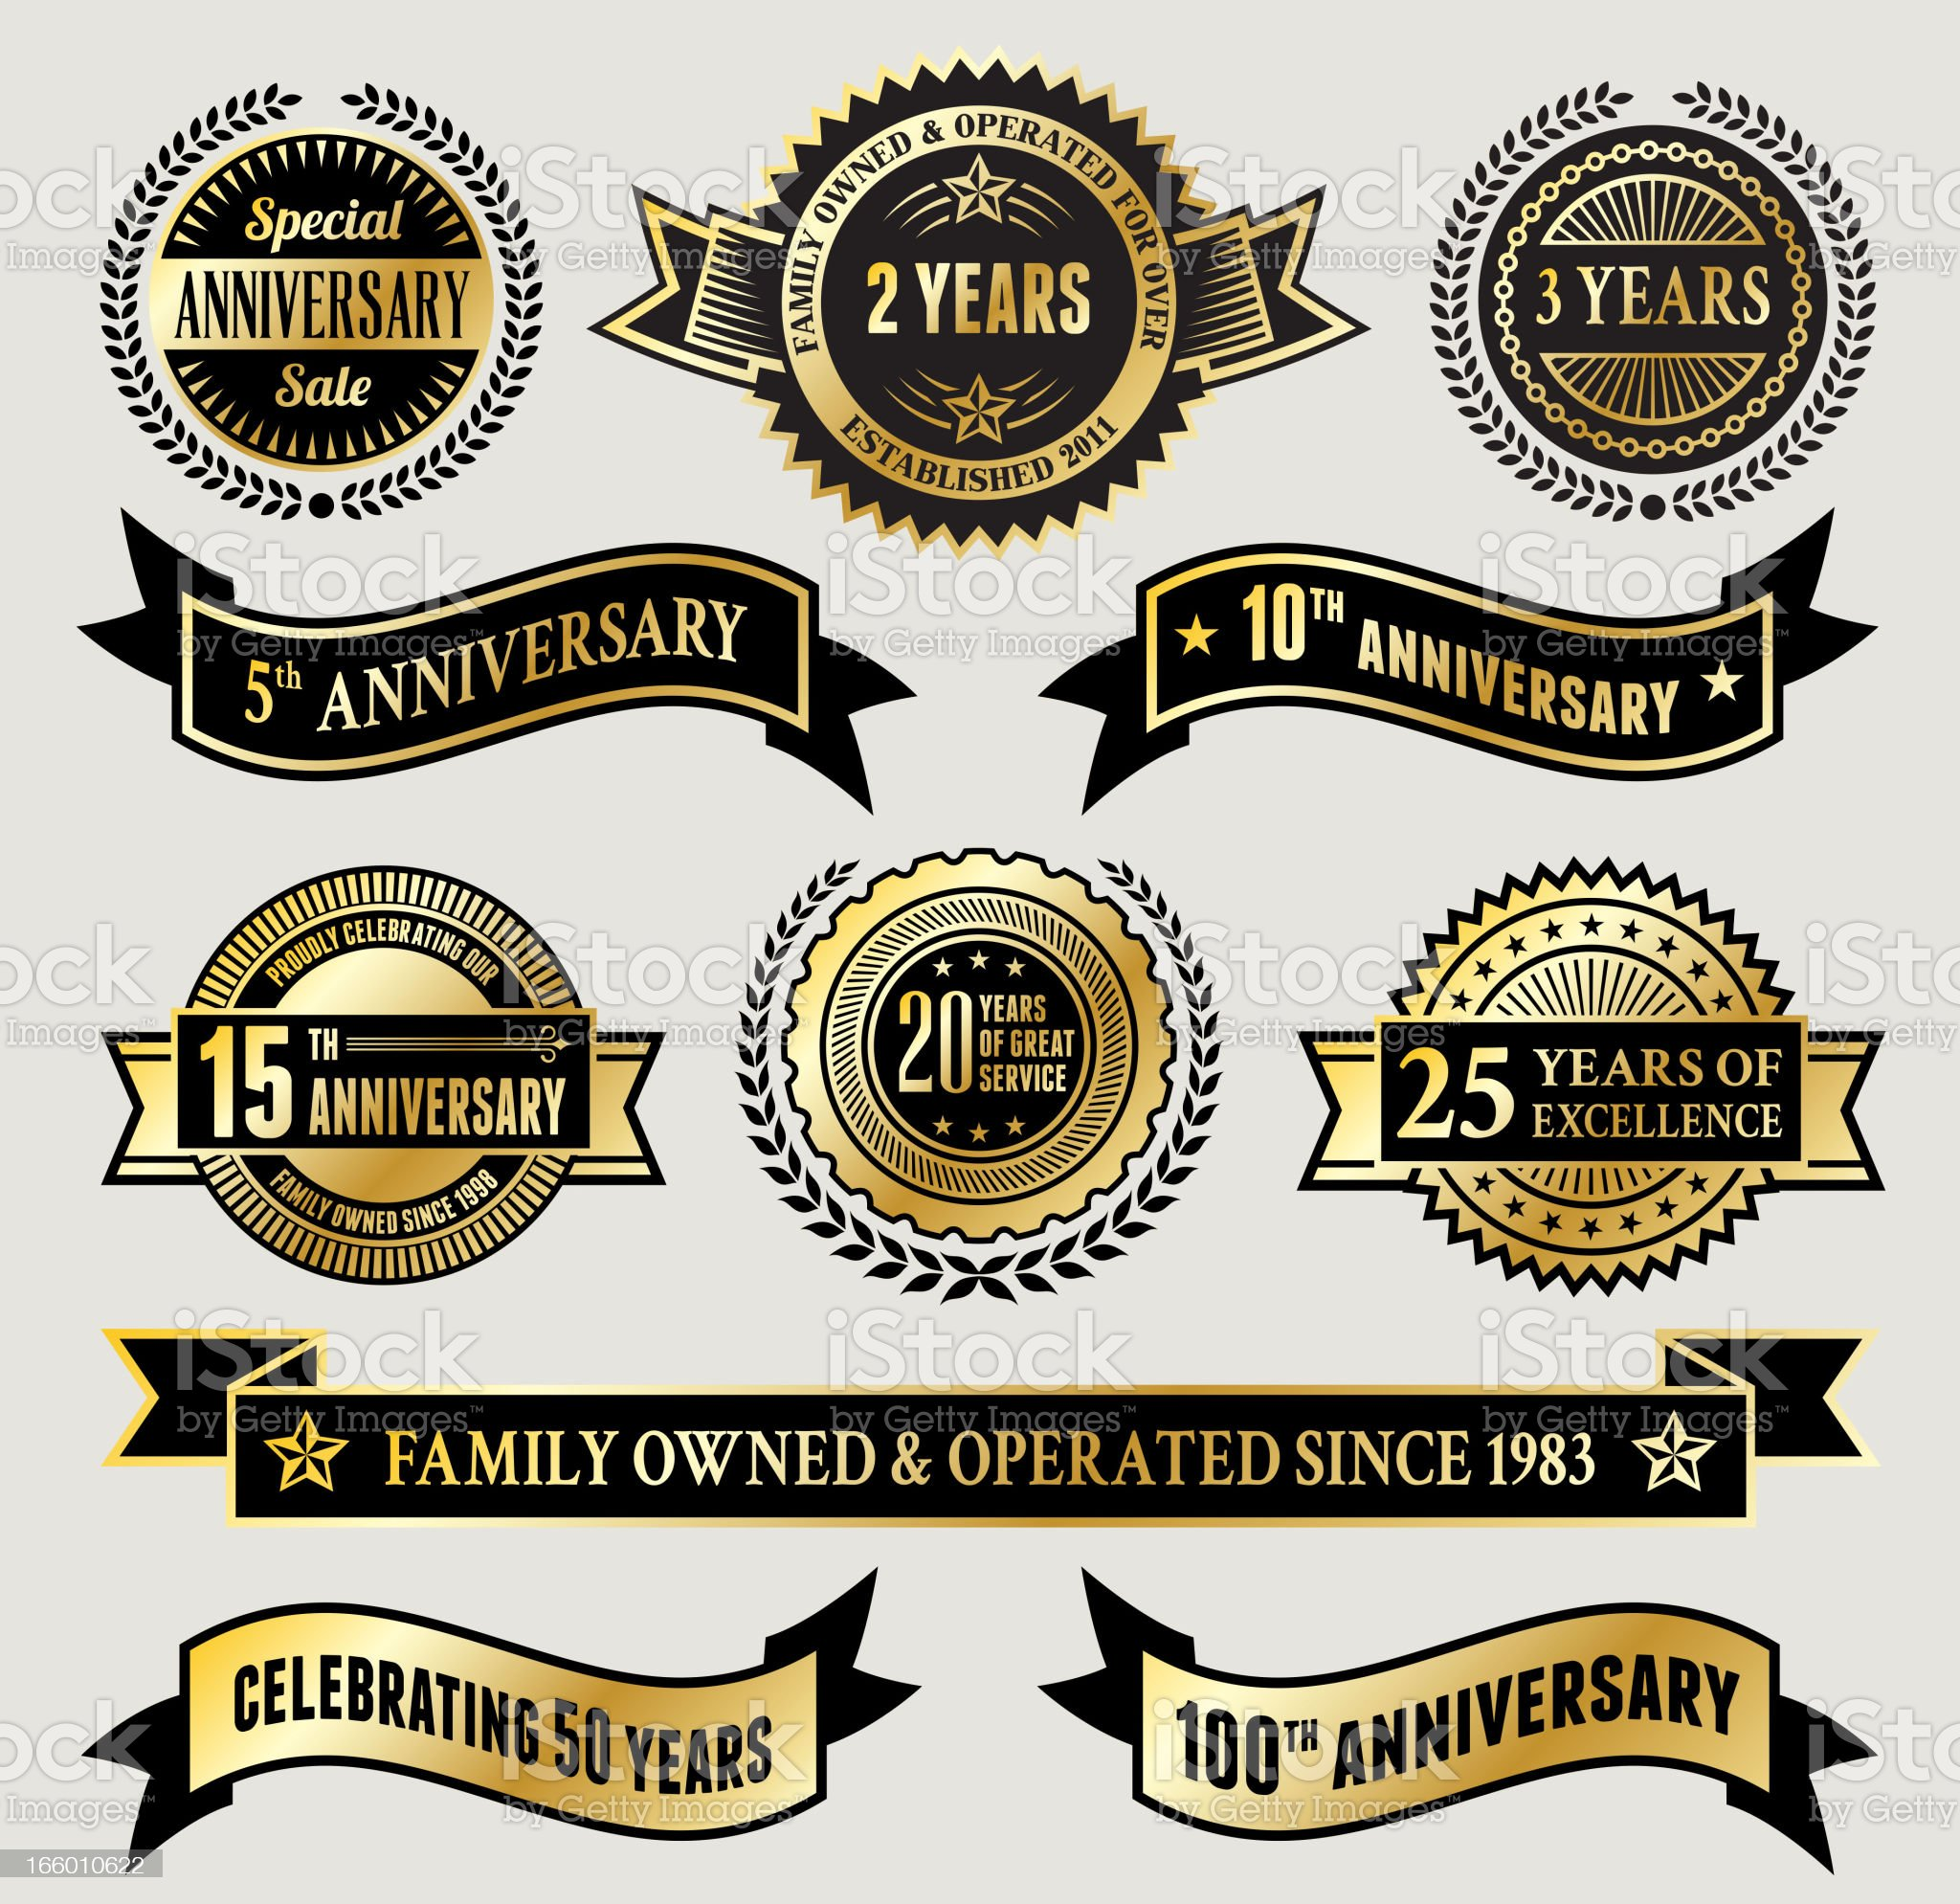 Golden Anniversary Badge Collection royalty-free stock vector art